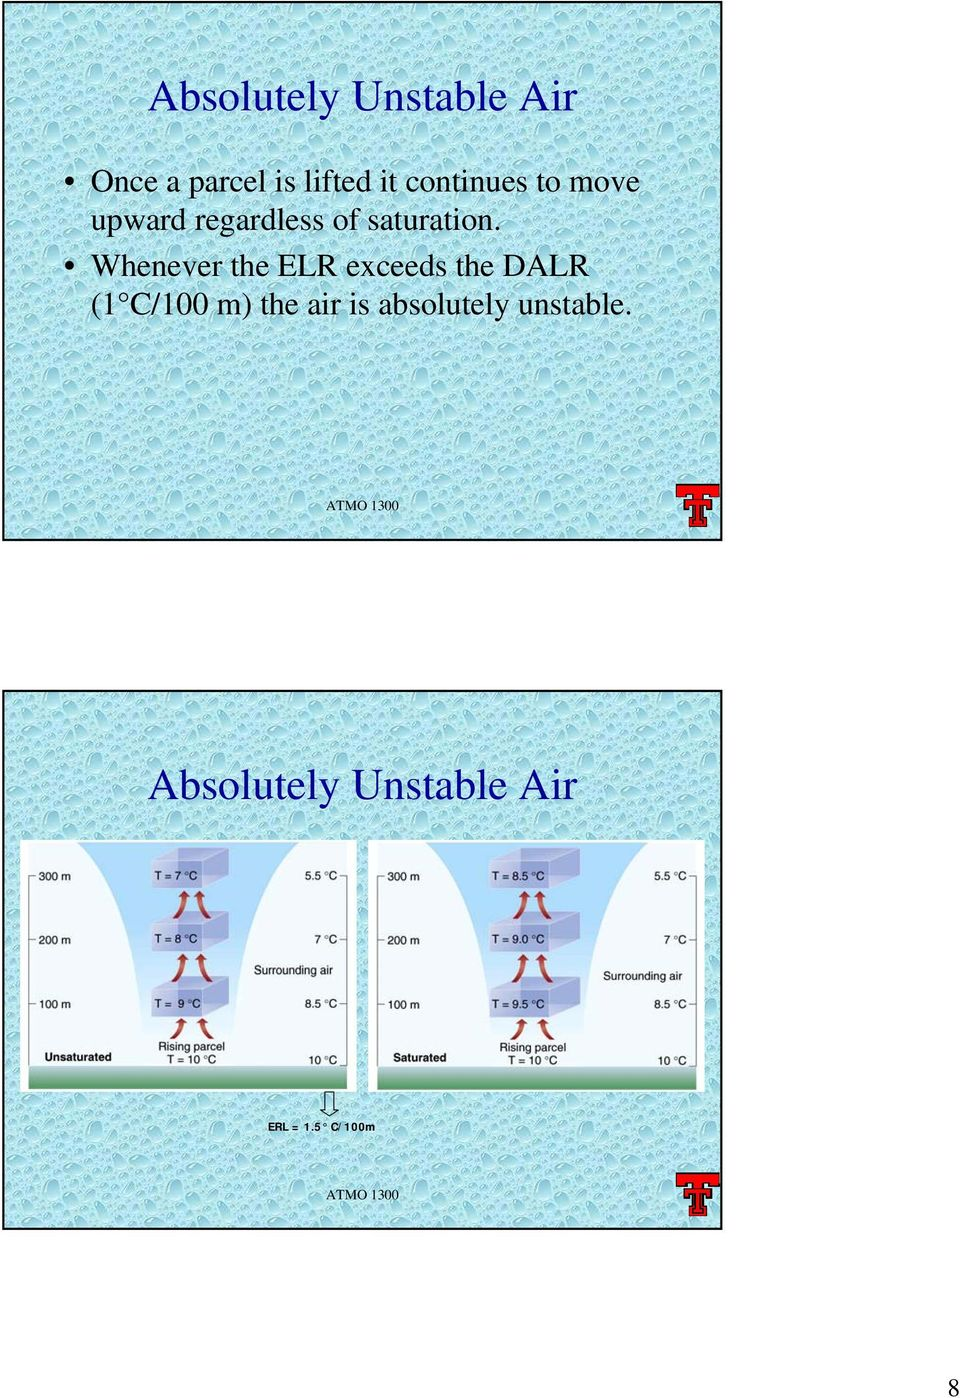 Whenever the ELR exceeds the DALR (1 C/100 m) the air